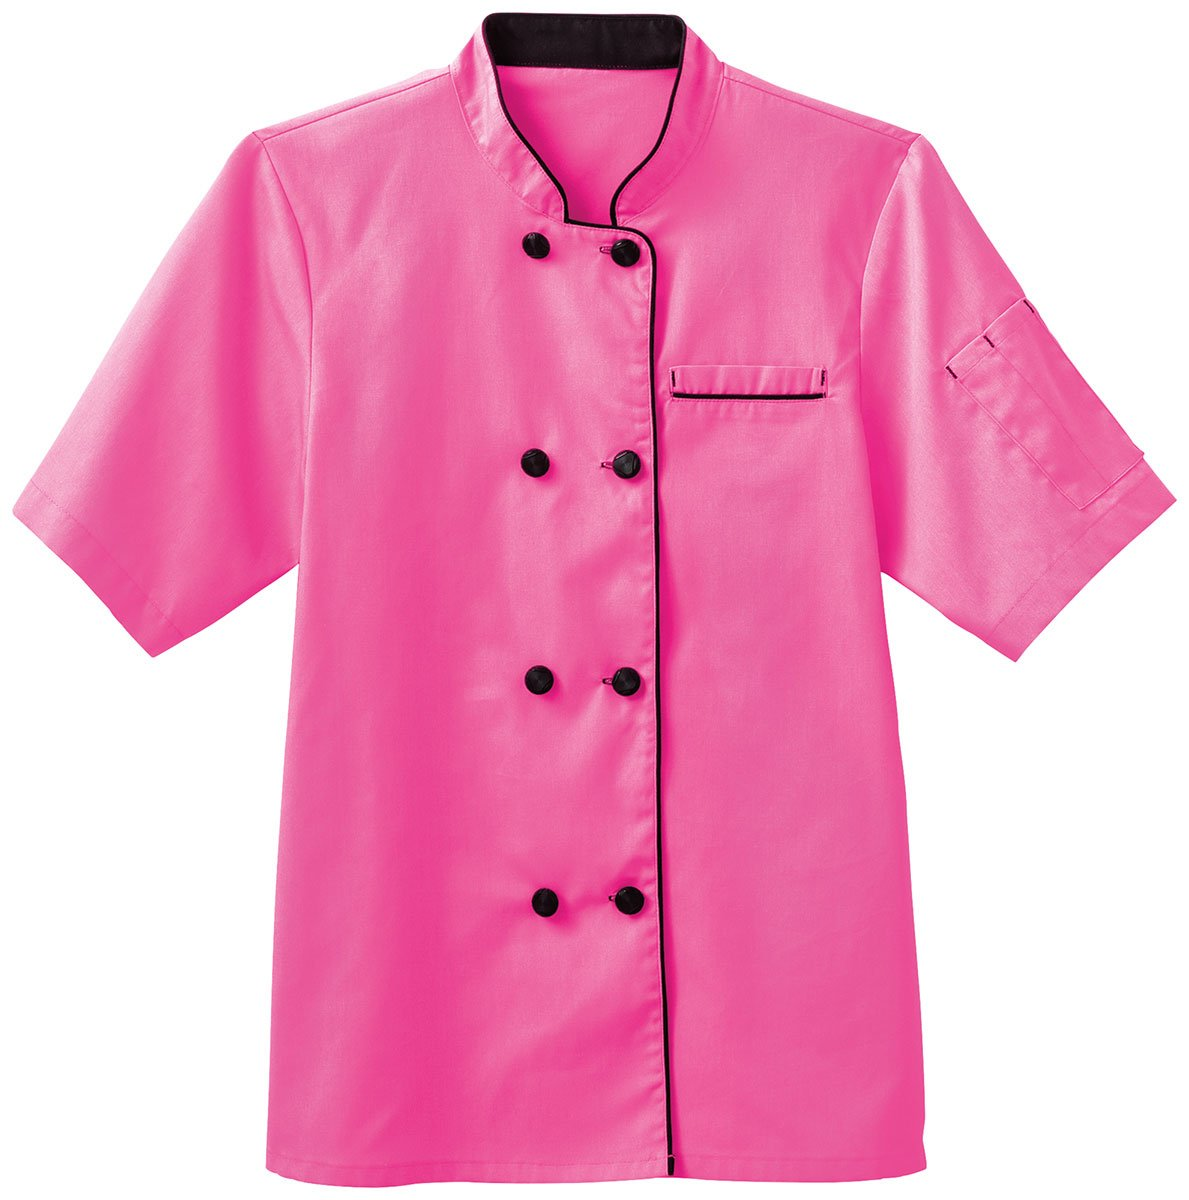 Five Star Chef Apparel Ladies Short Sleeve Executive Coat (Posh Pink, XXX-Large) by Five Star Chef Apparel